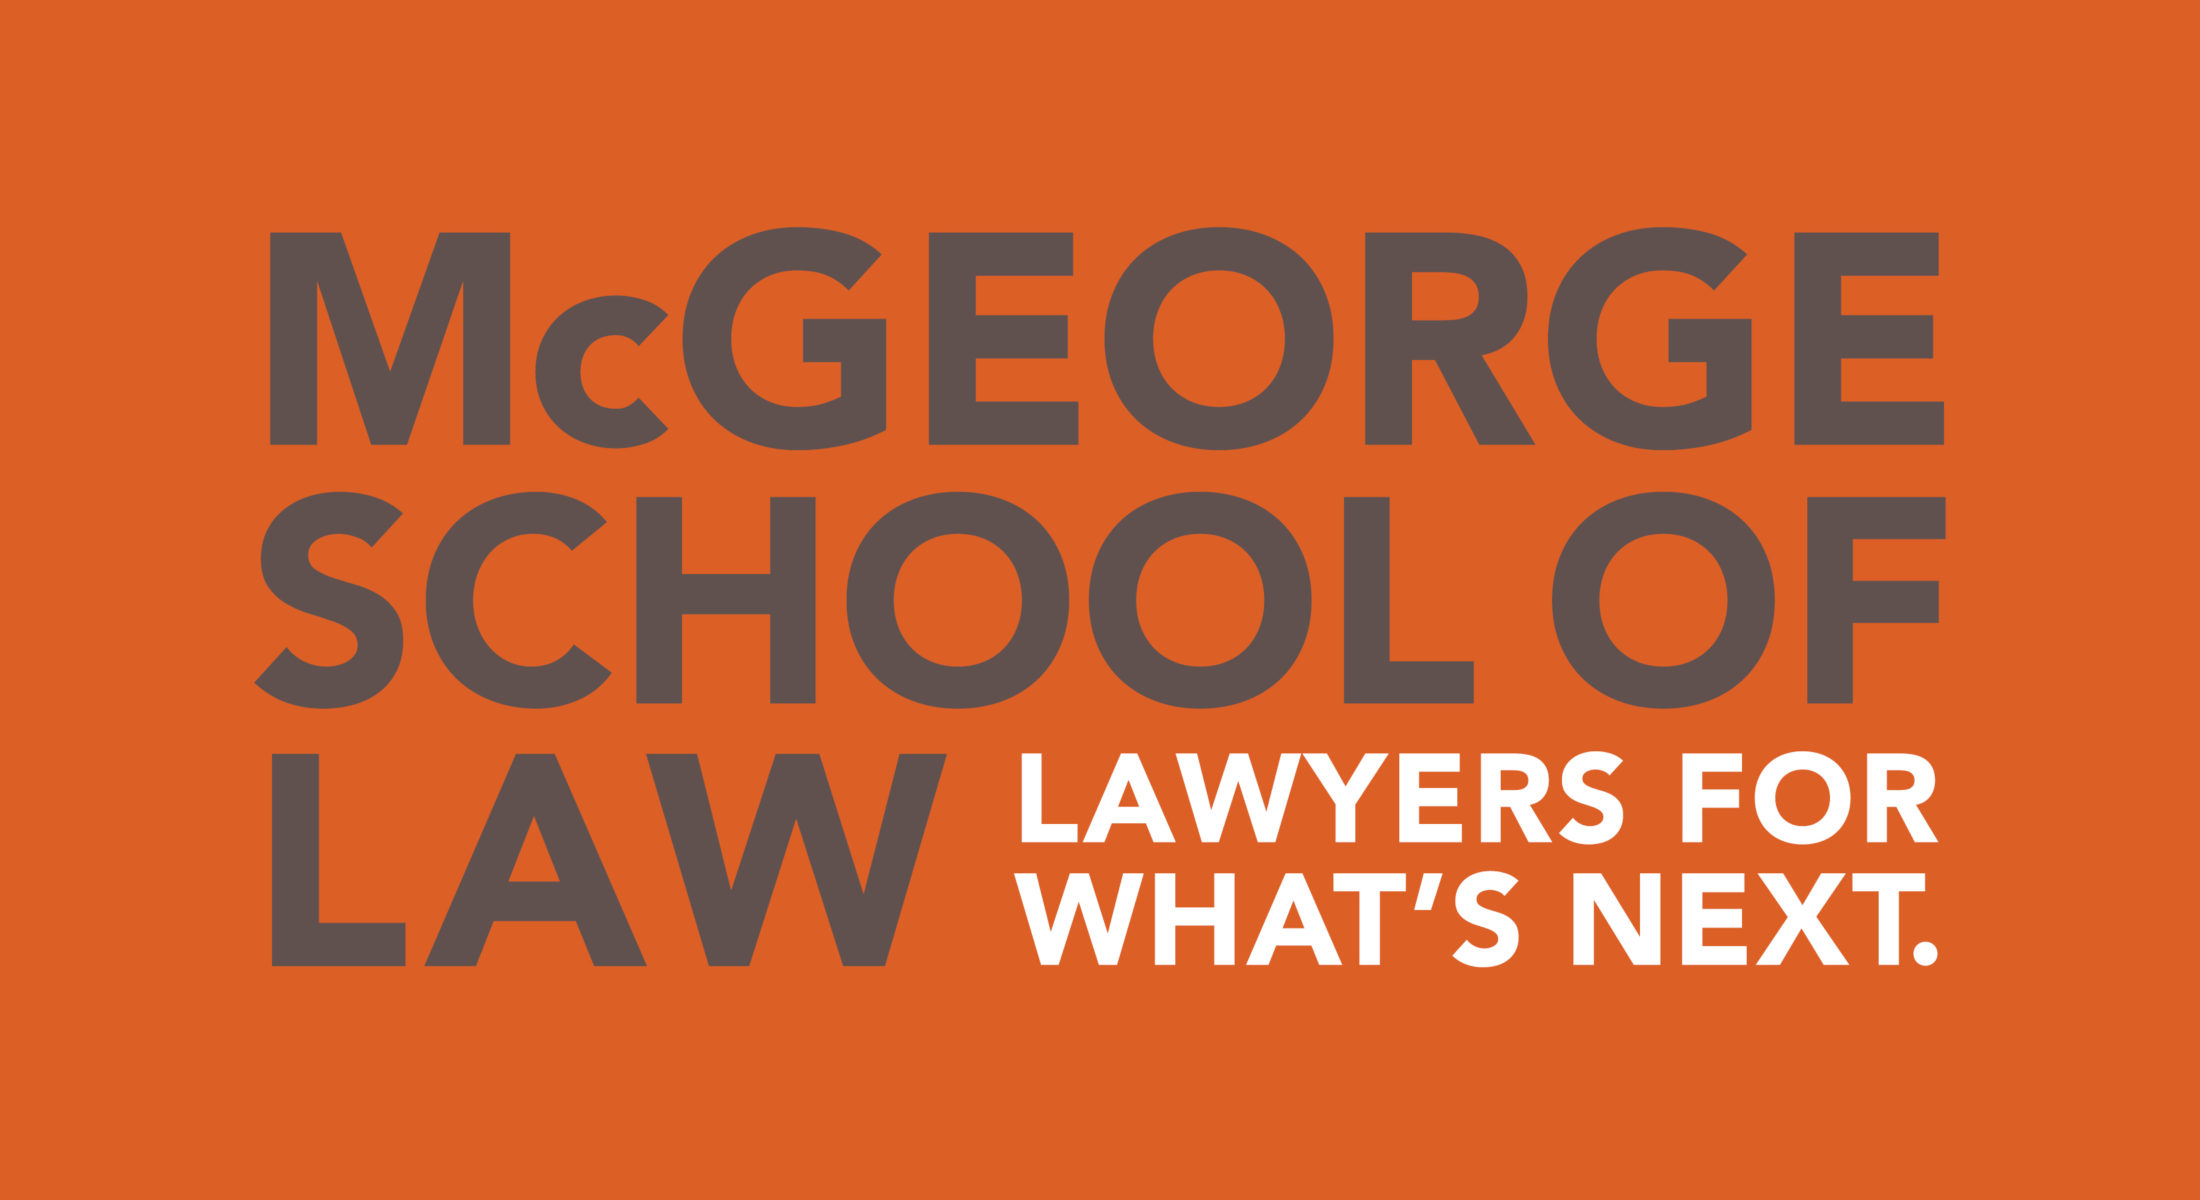 Dean Schwartz, University of the Pacific, McGeorge School of Law logo